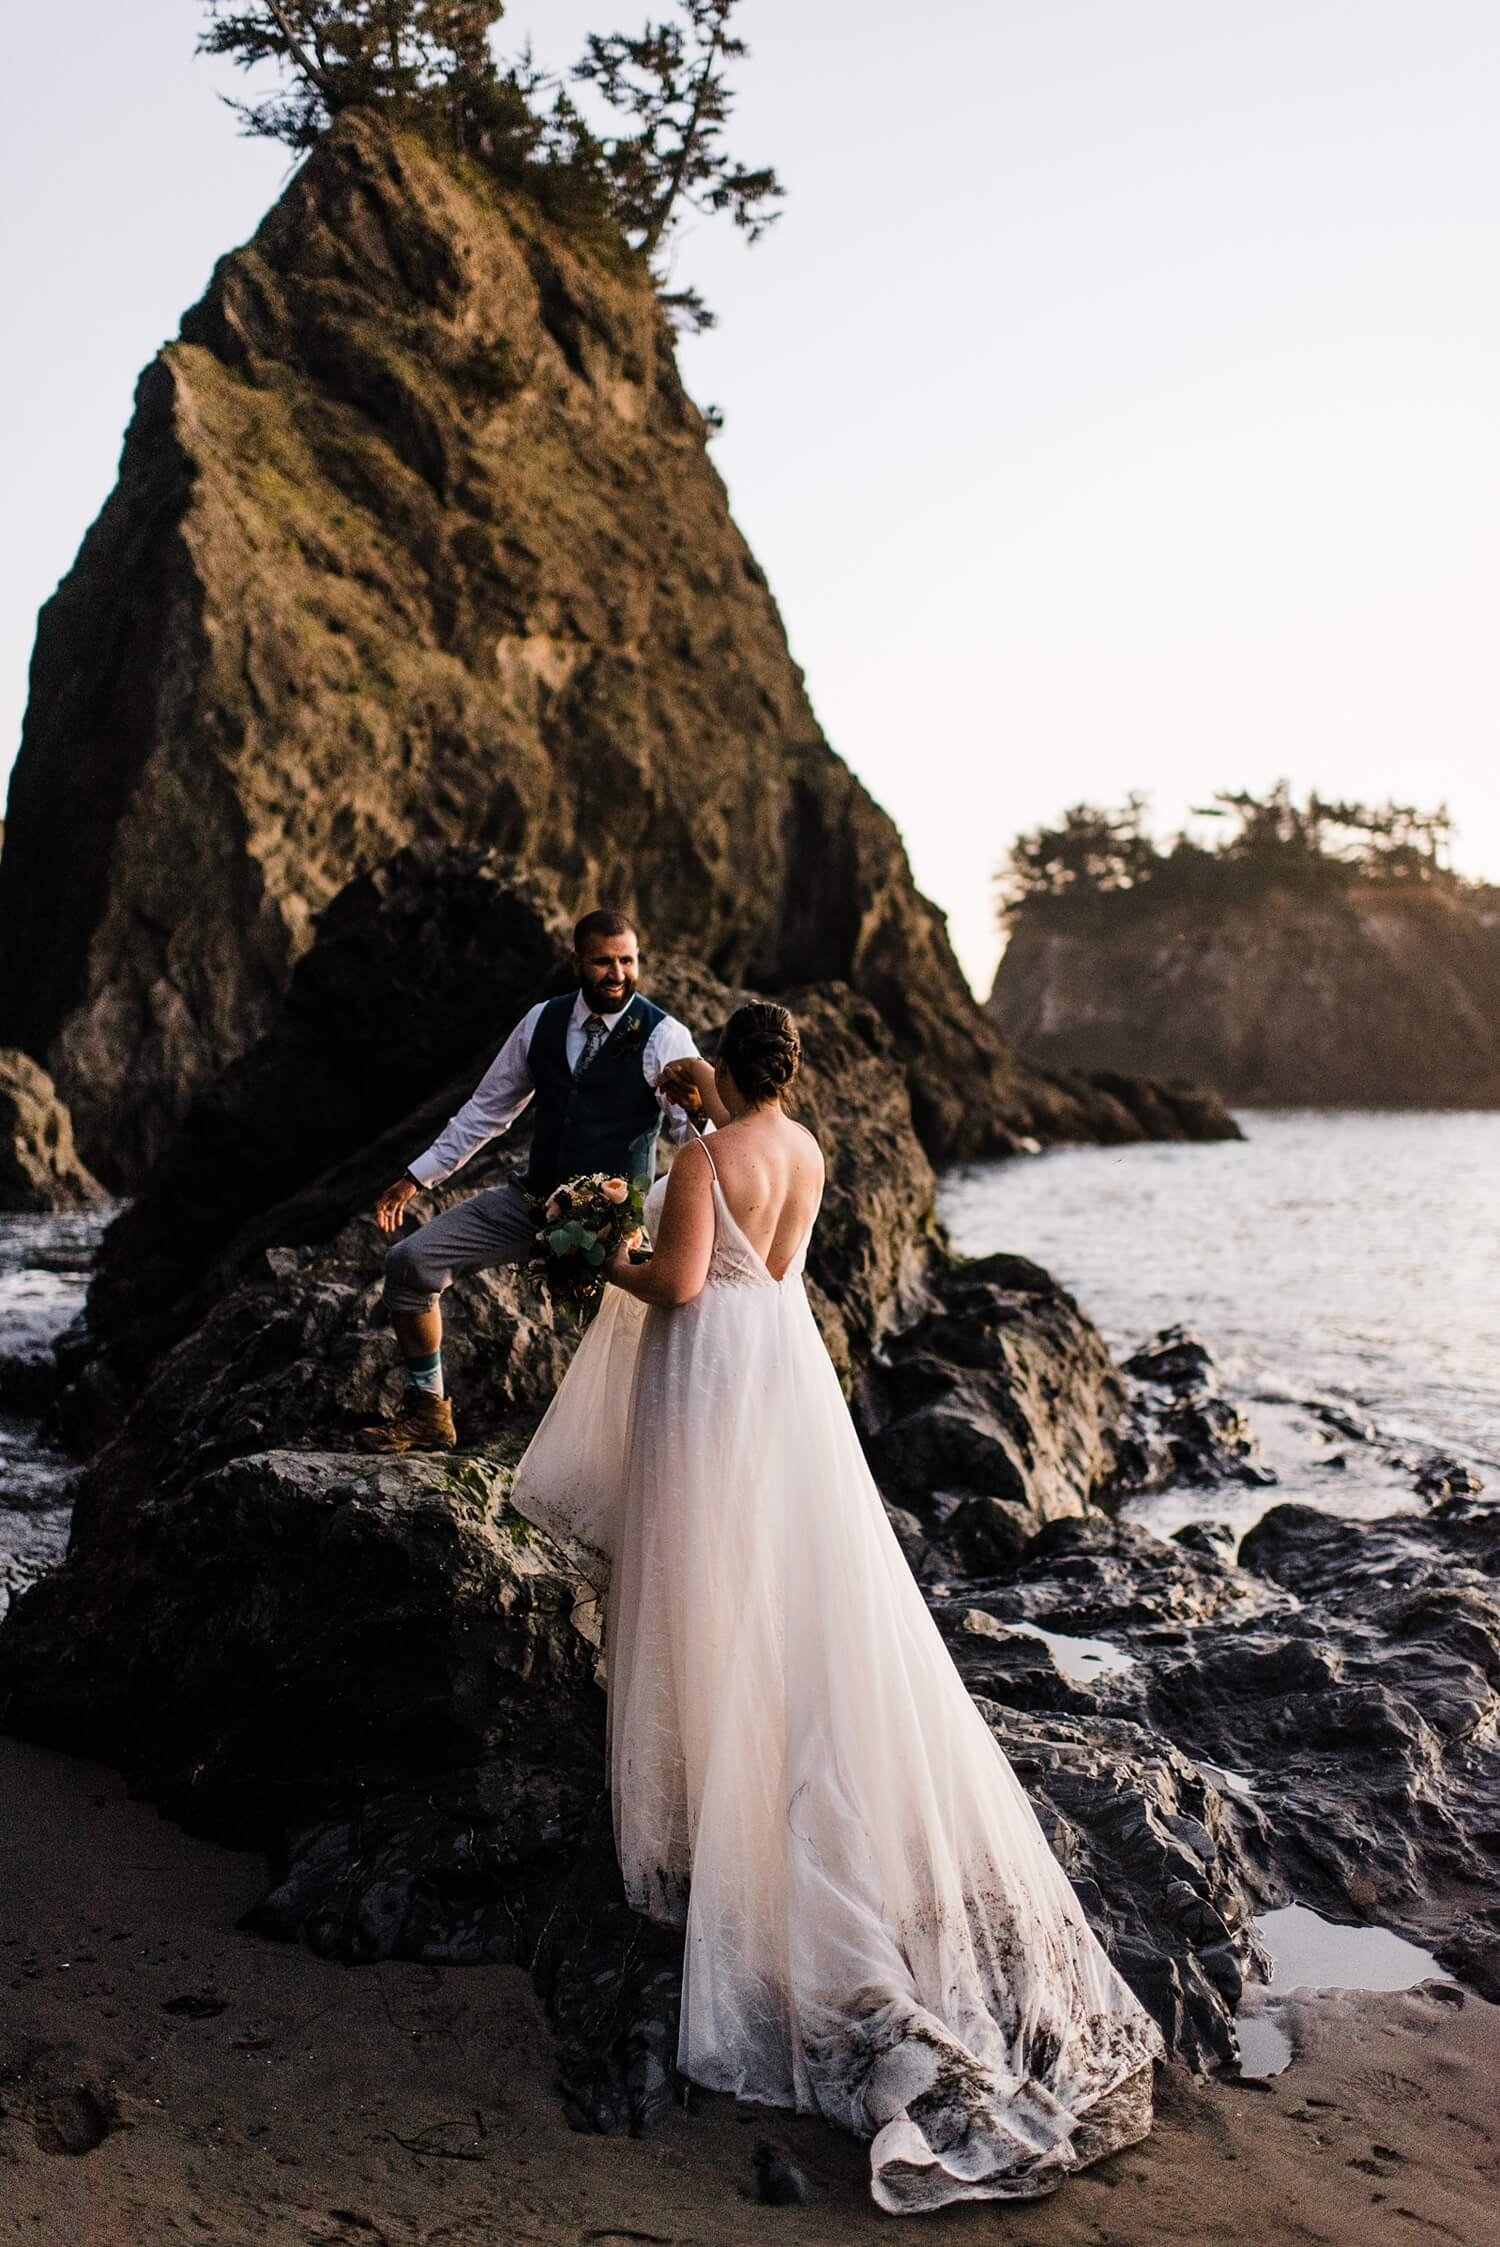 samuel h boardman oregon coast elopement,Oregon Coast,adventure elopement photographer,beach elopement,beach wedding,elopement,elopement photographer,intimate wedding,oregon coast elopement,oregon wedding,pacific northwest wedding,sam starns,